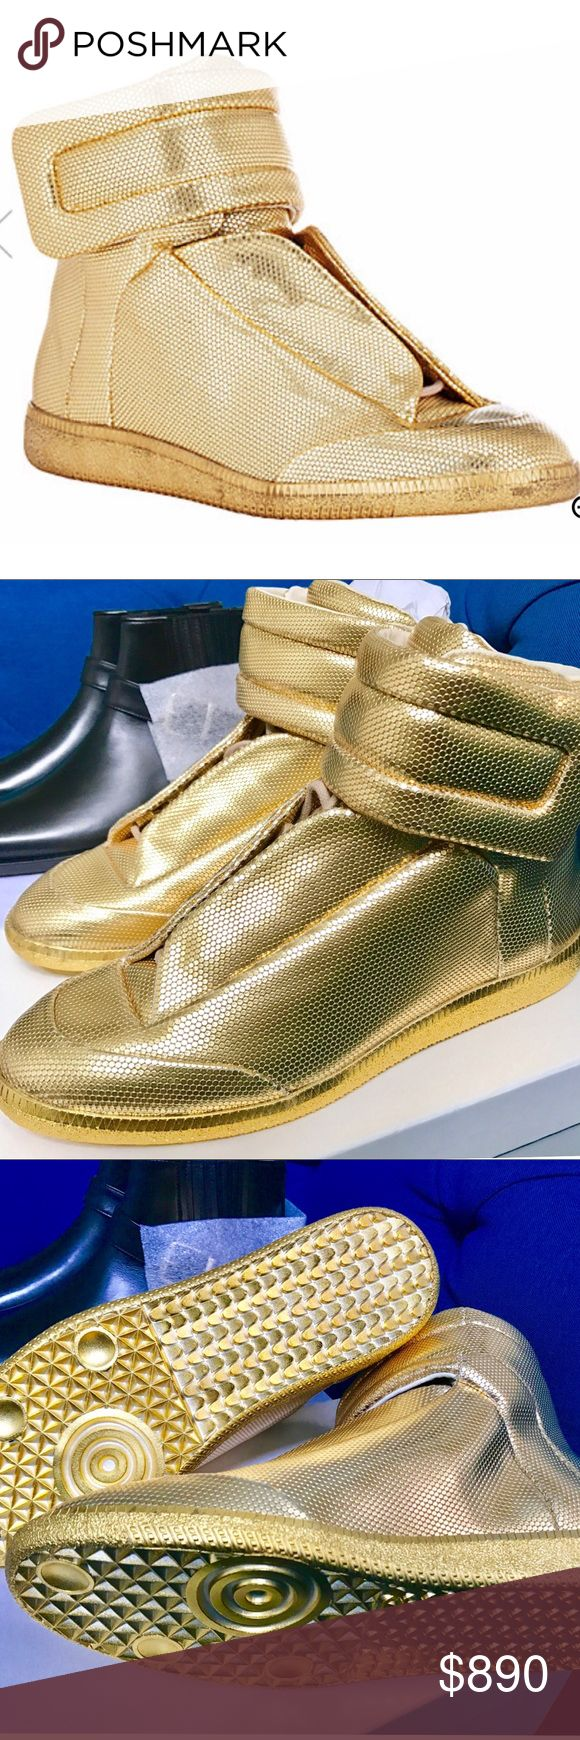 """Maison Margiela Men's Future High-Top Sneakers. Up for sale it's a brand new future high top sneakers from Maison Margiela metallic gold dot-stamped leather """"Future"""" high-top sneakers styled with foldover eyestay and wide ankle strap with hook-and-loop closure. Maison Margiela Shoes Sneakers"""